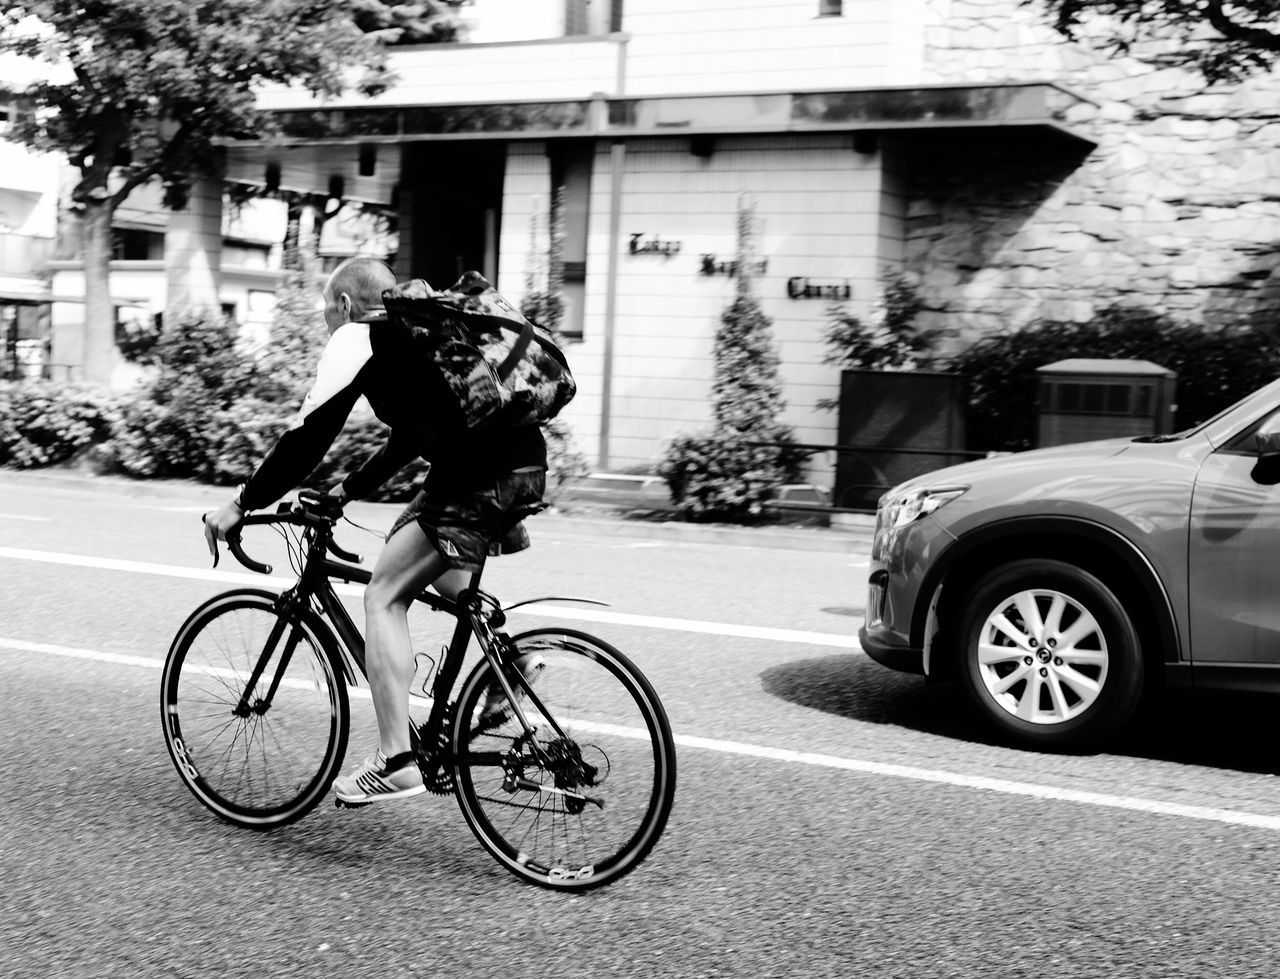 Race Bicycle Street Transportation On The Move Land Vehicle Mode Of Transport Cycling City Road Race Car Automobile Monochrome Photography Monochrome Blackandwhite Blackandwhite Photography Black And White